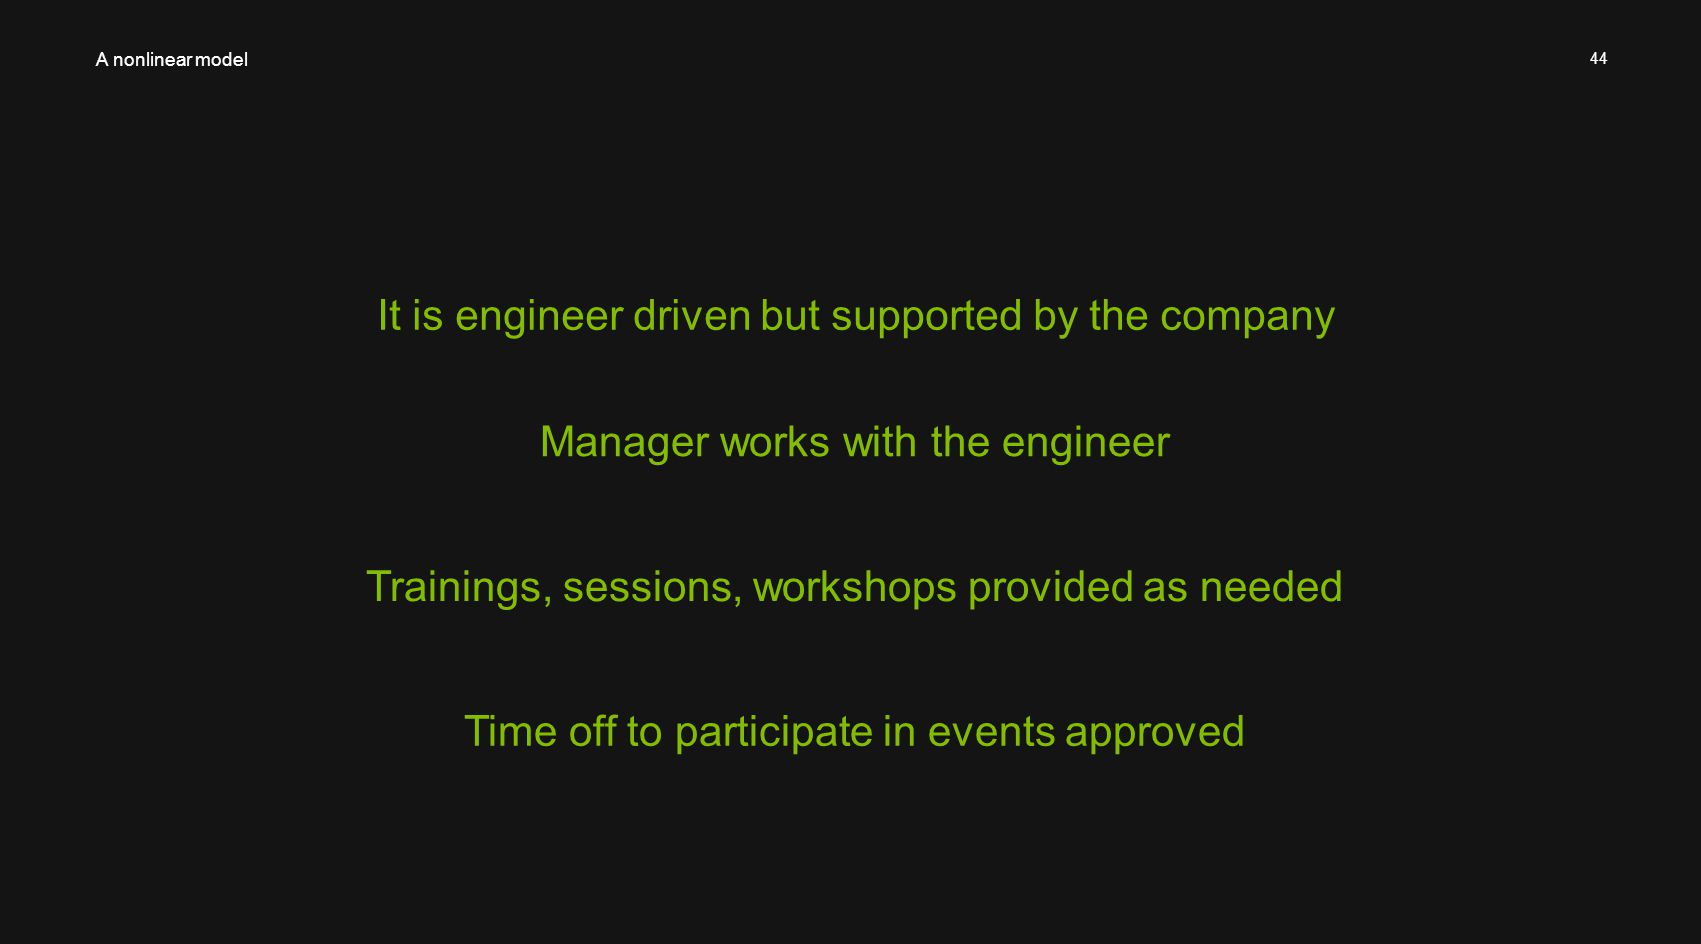 44 It is engineer driven but supported by the company A nonlinear model Manager works with the engineer Trainings, sessions, workshops provided as nee